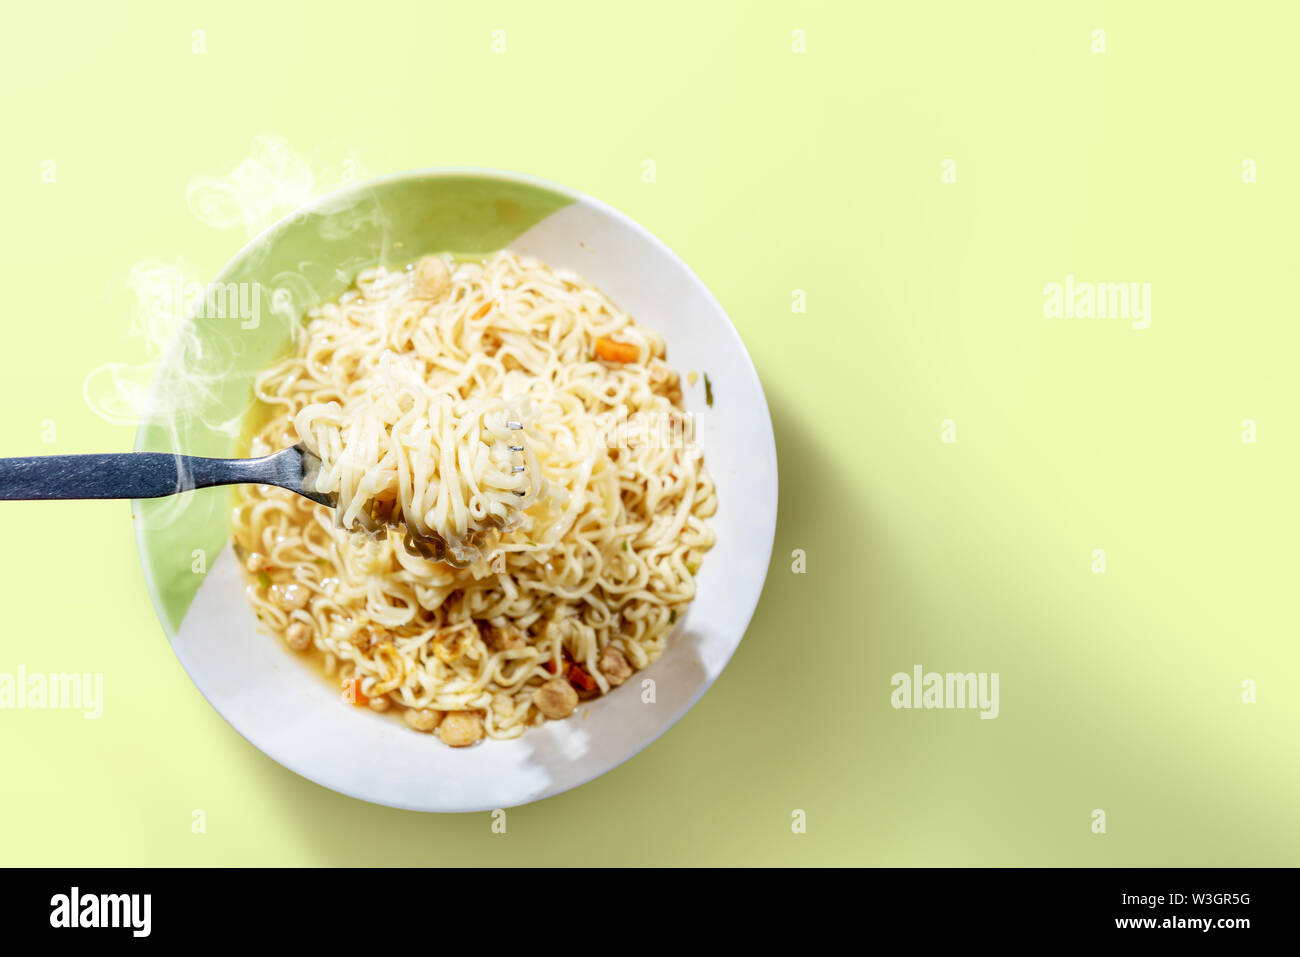 People eat the noodles with fork on green background - Stock Image